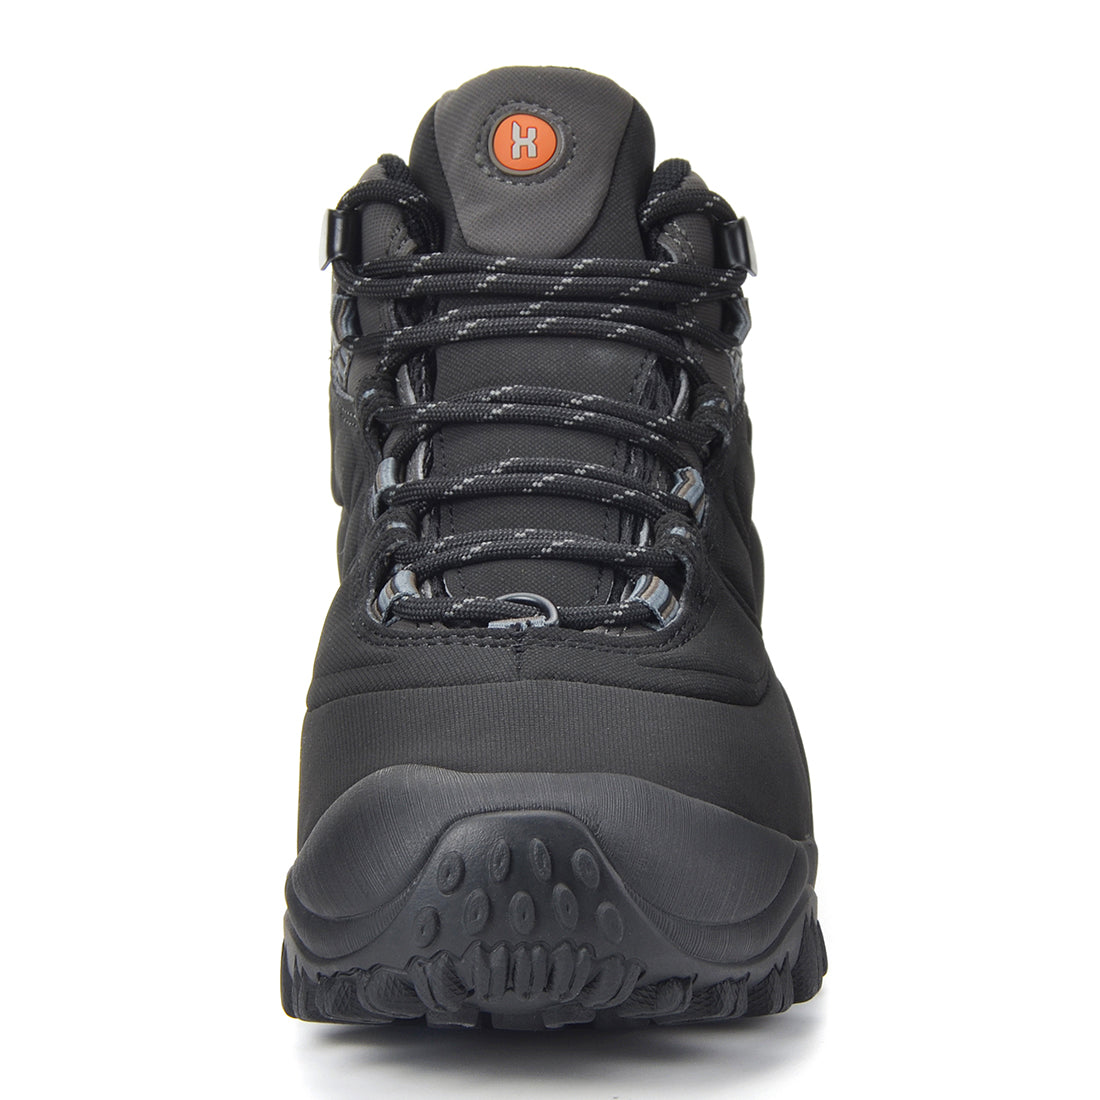 Waterproof Mid Rise Hiking Boots – xpeti